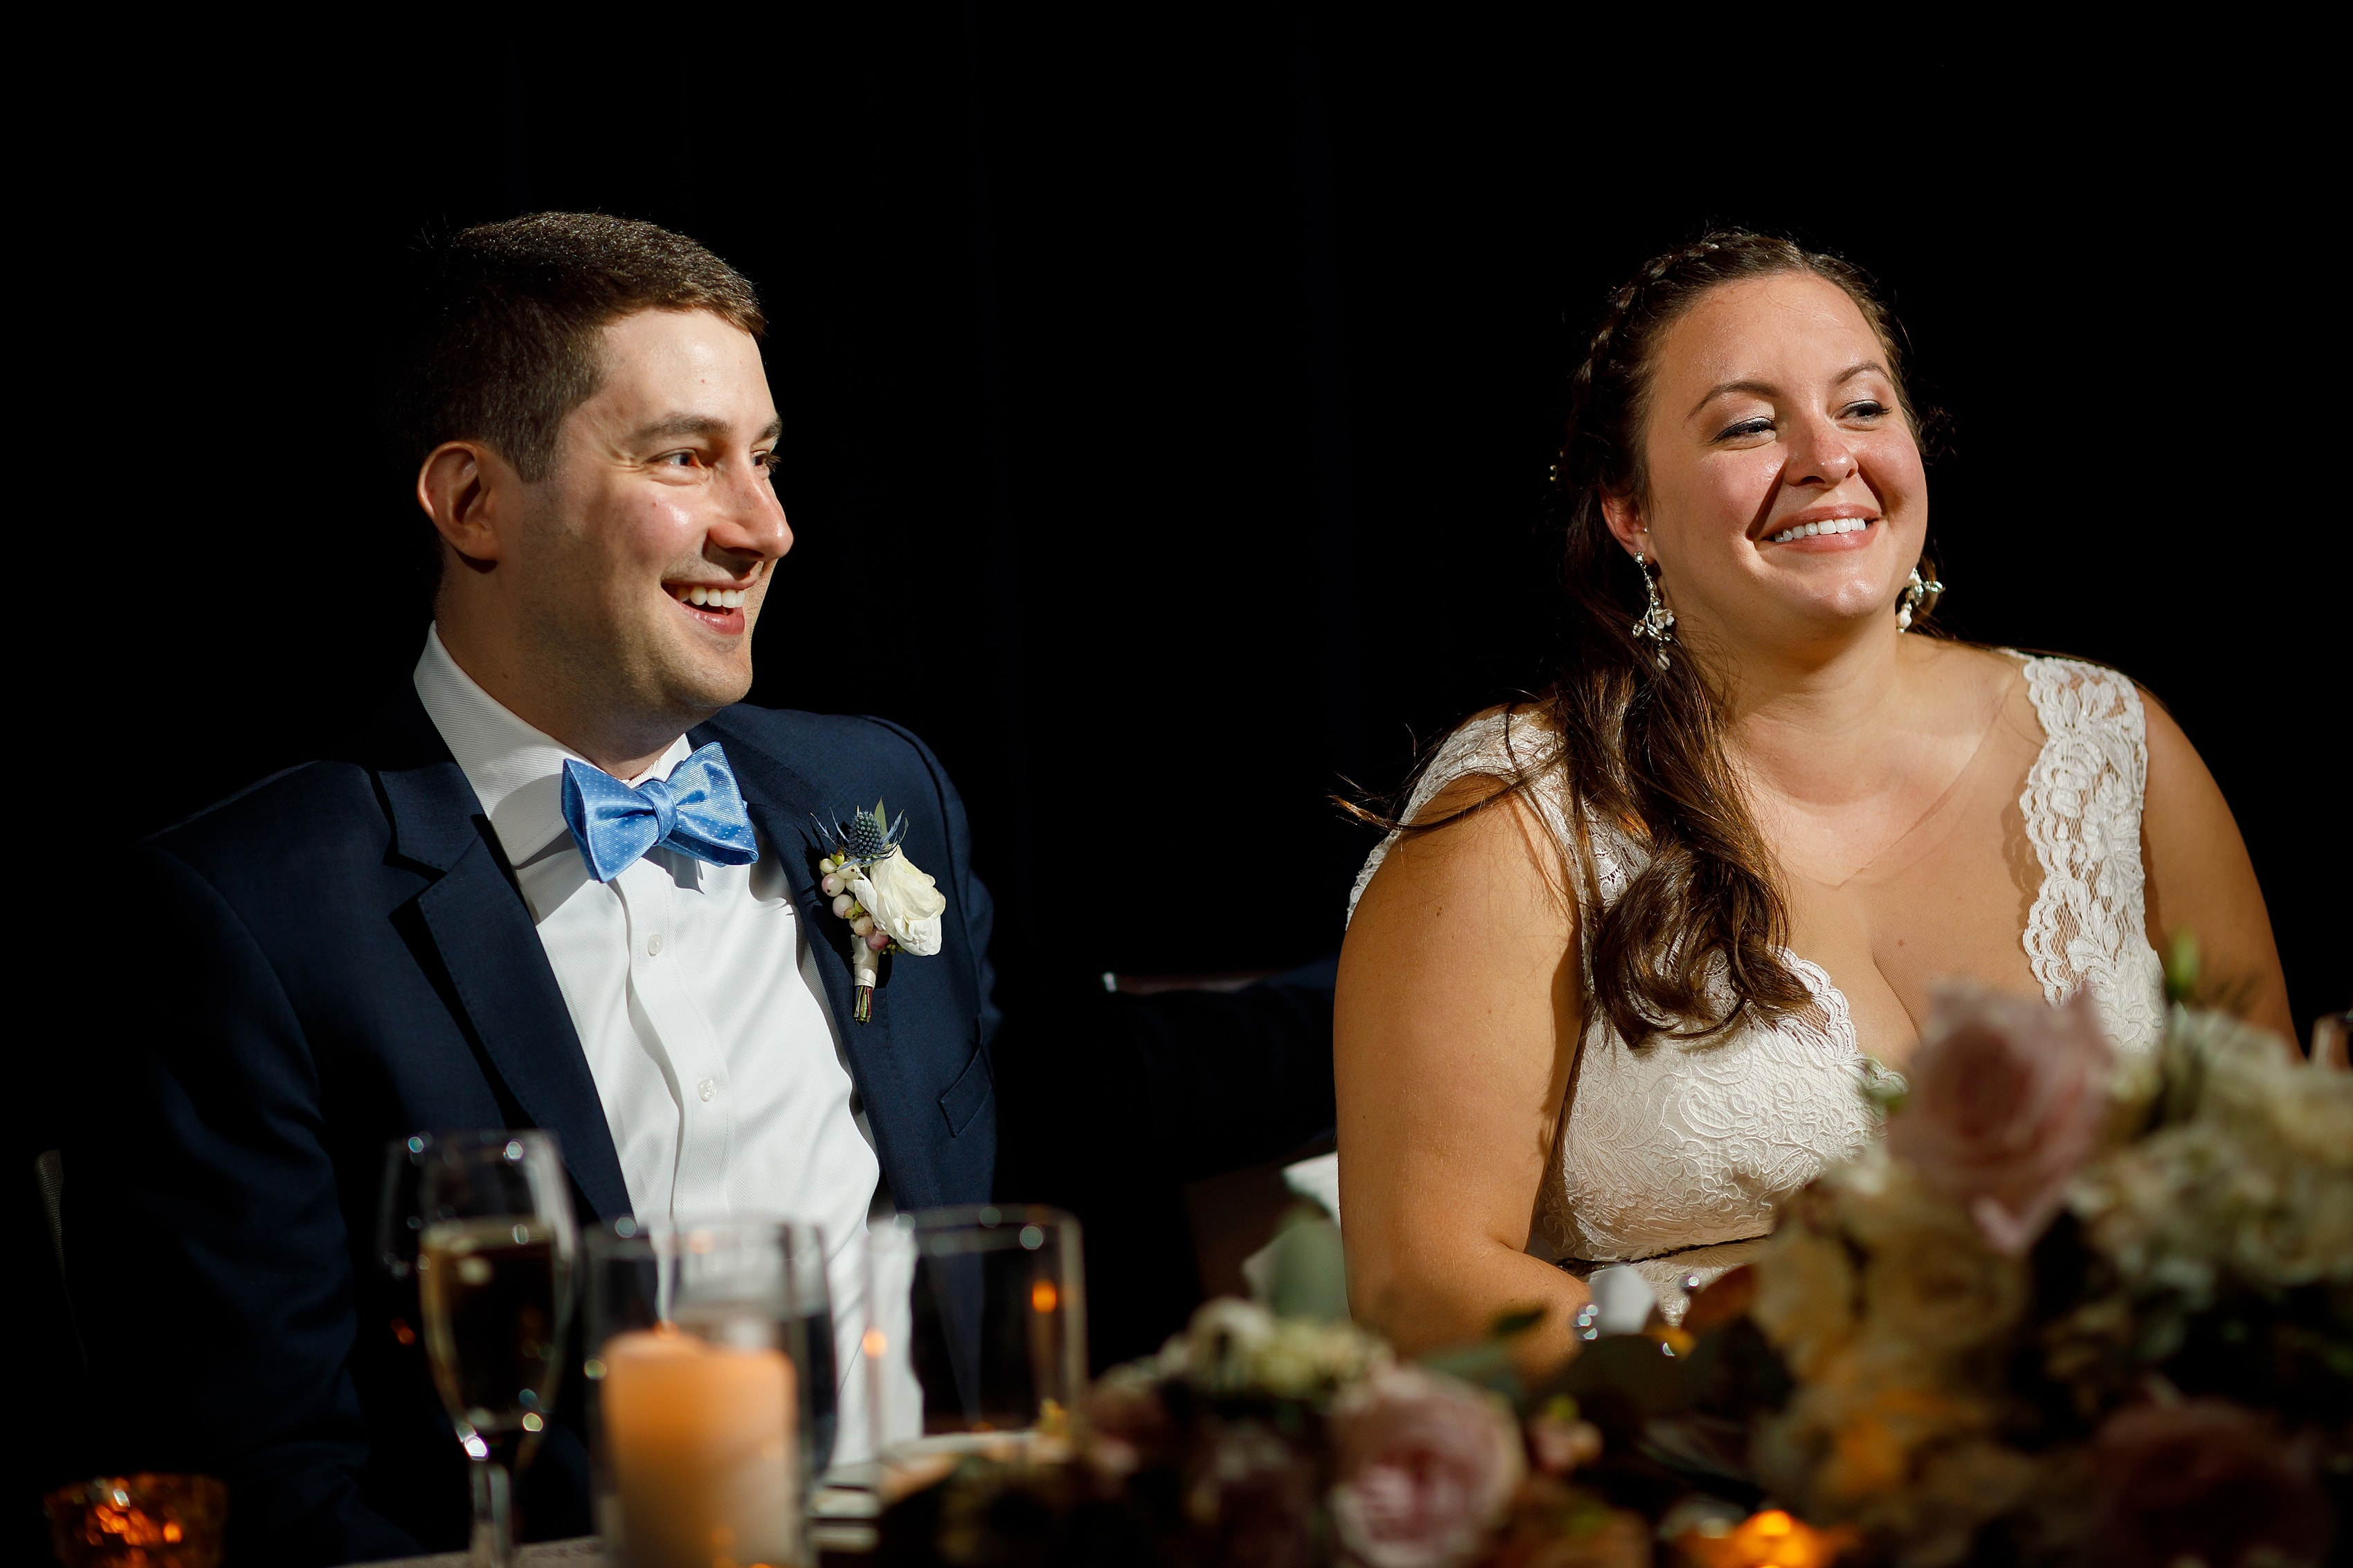 toasts during wedding reception at Kimpton Gray Hotel in downtown Chicago